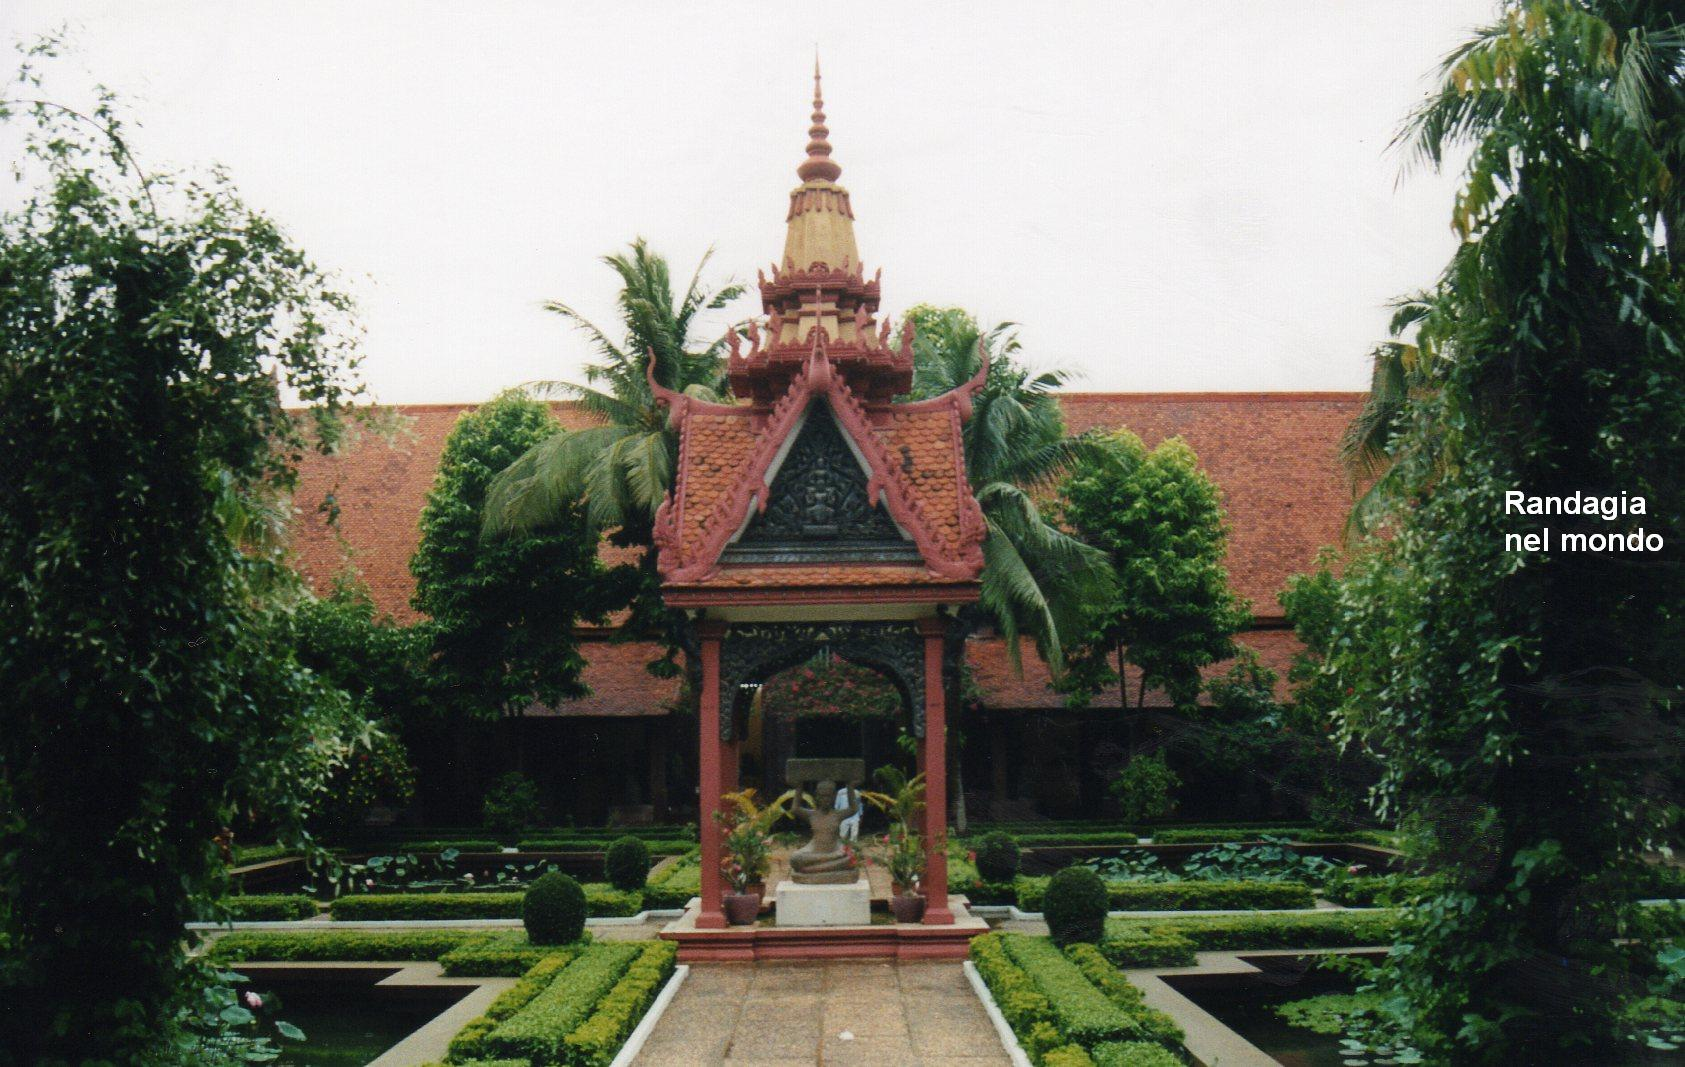 phnom penh, national museum 2